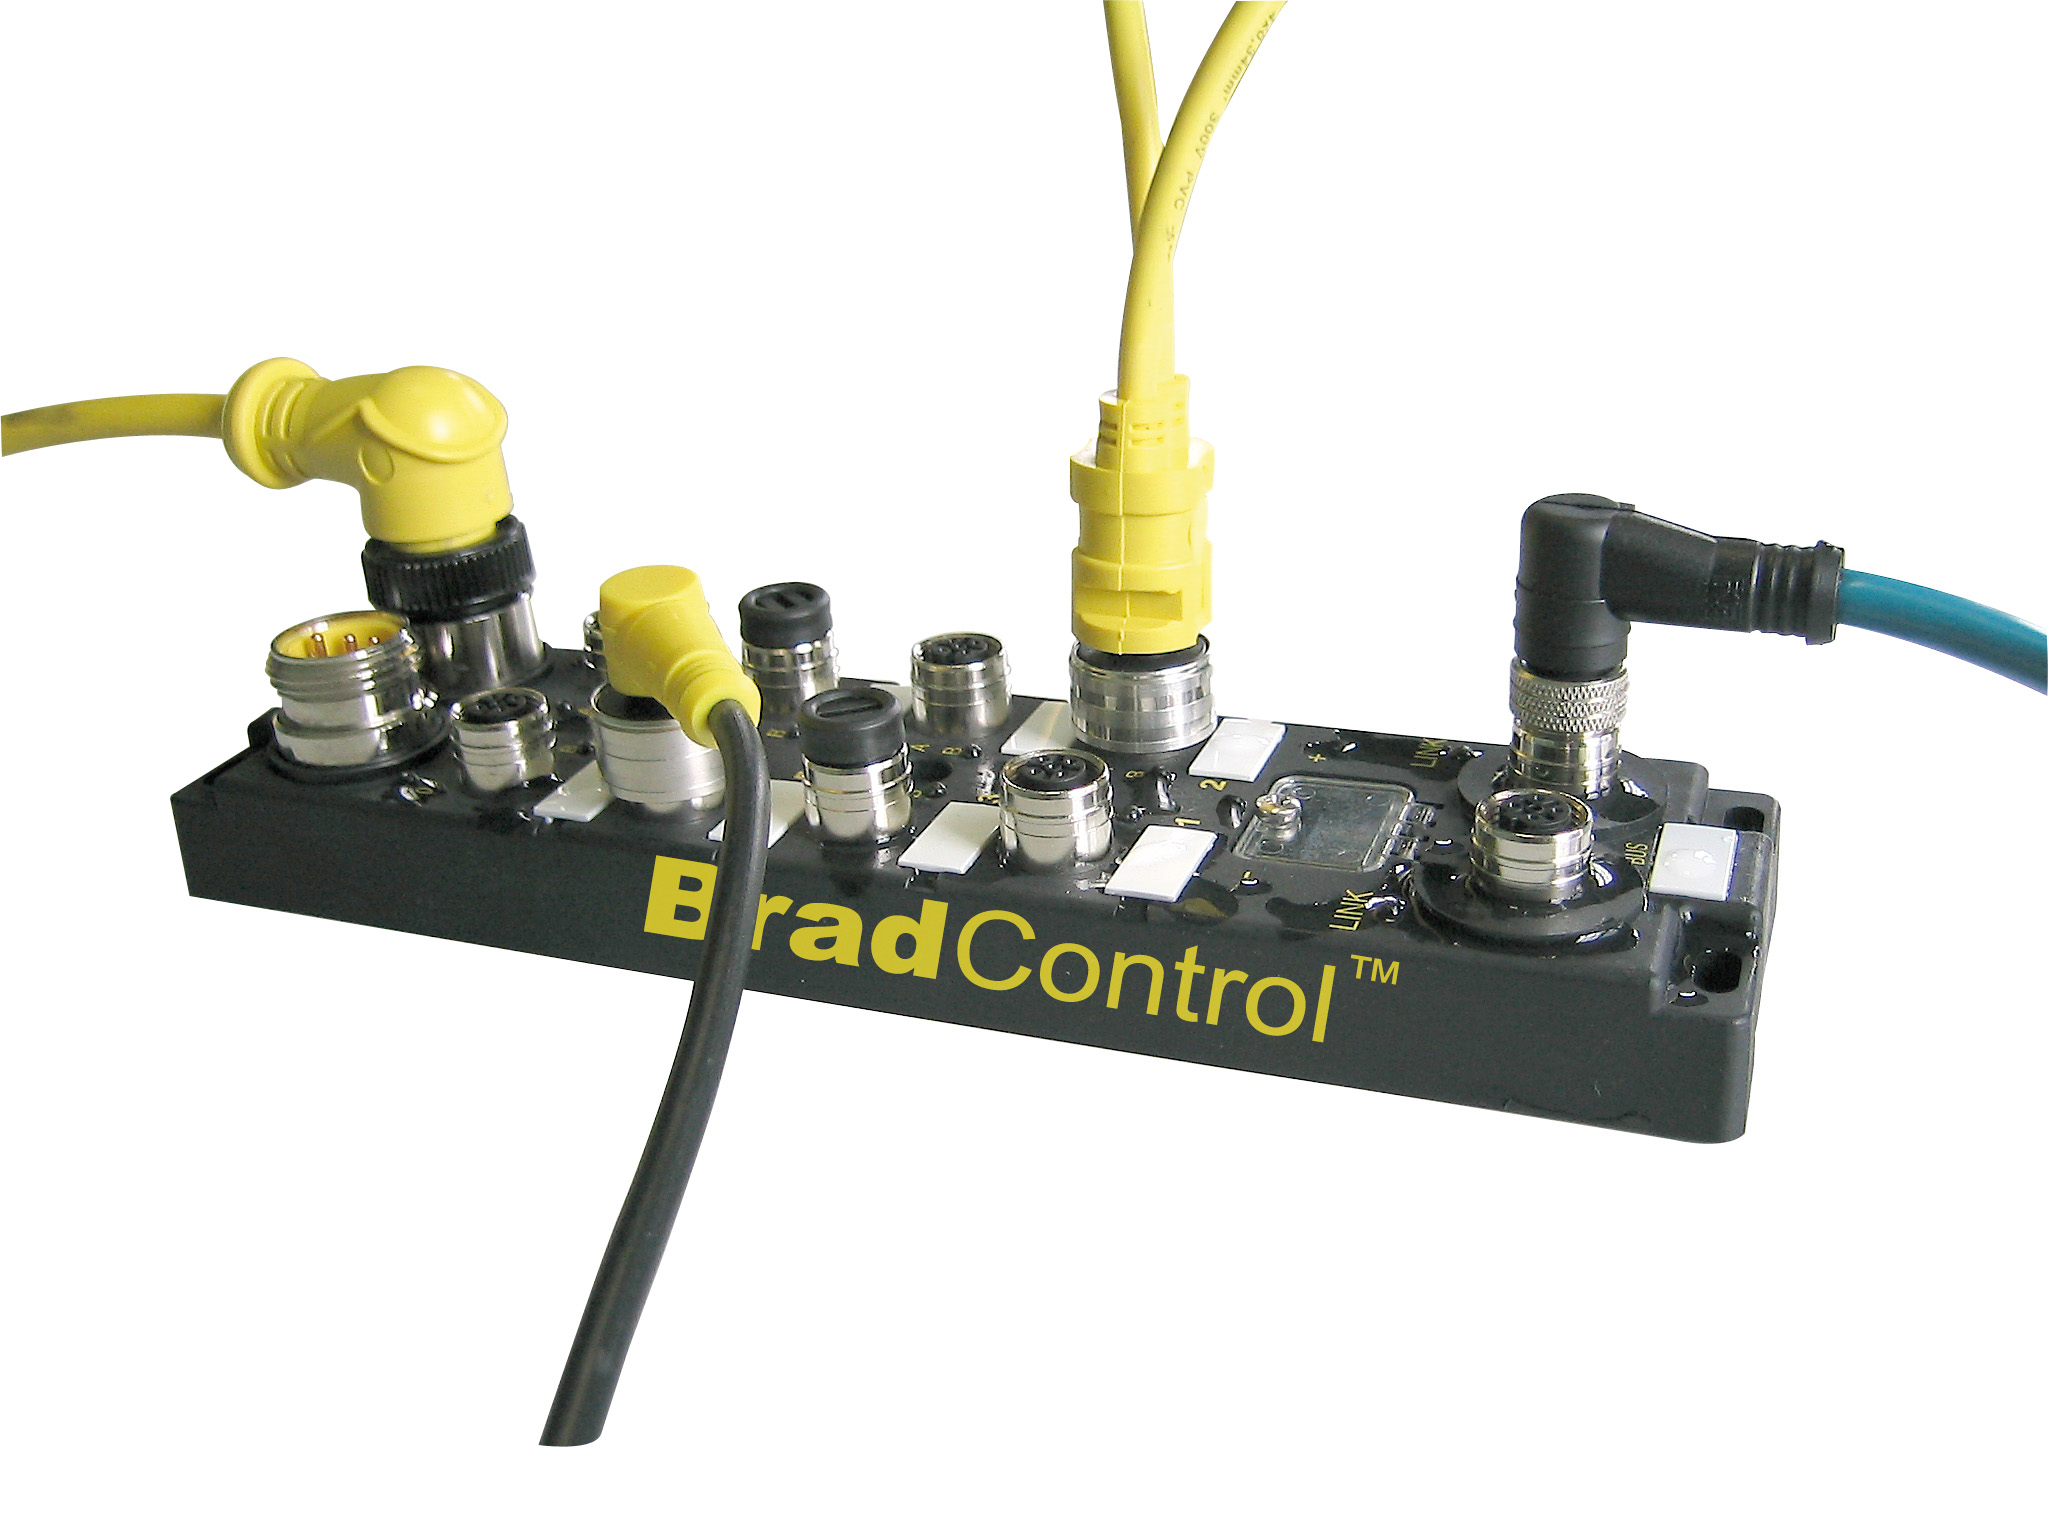 New Brad Harshio Ethernet I O Modules From Molex Integrate Moreover Ether Switch Wiring Diagram On Serial Cable Module